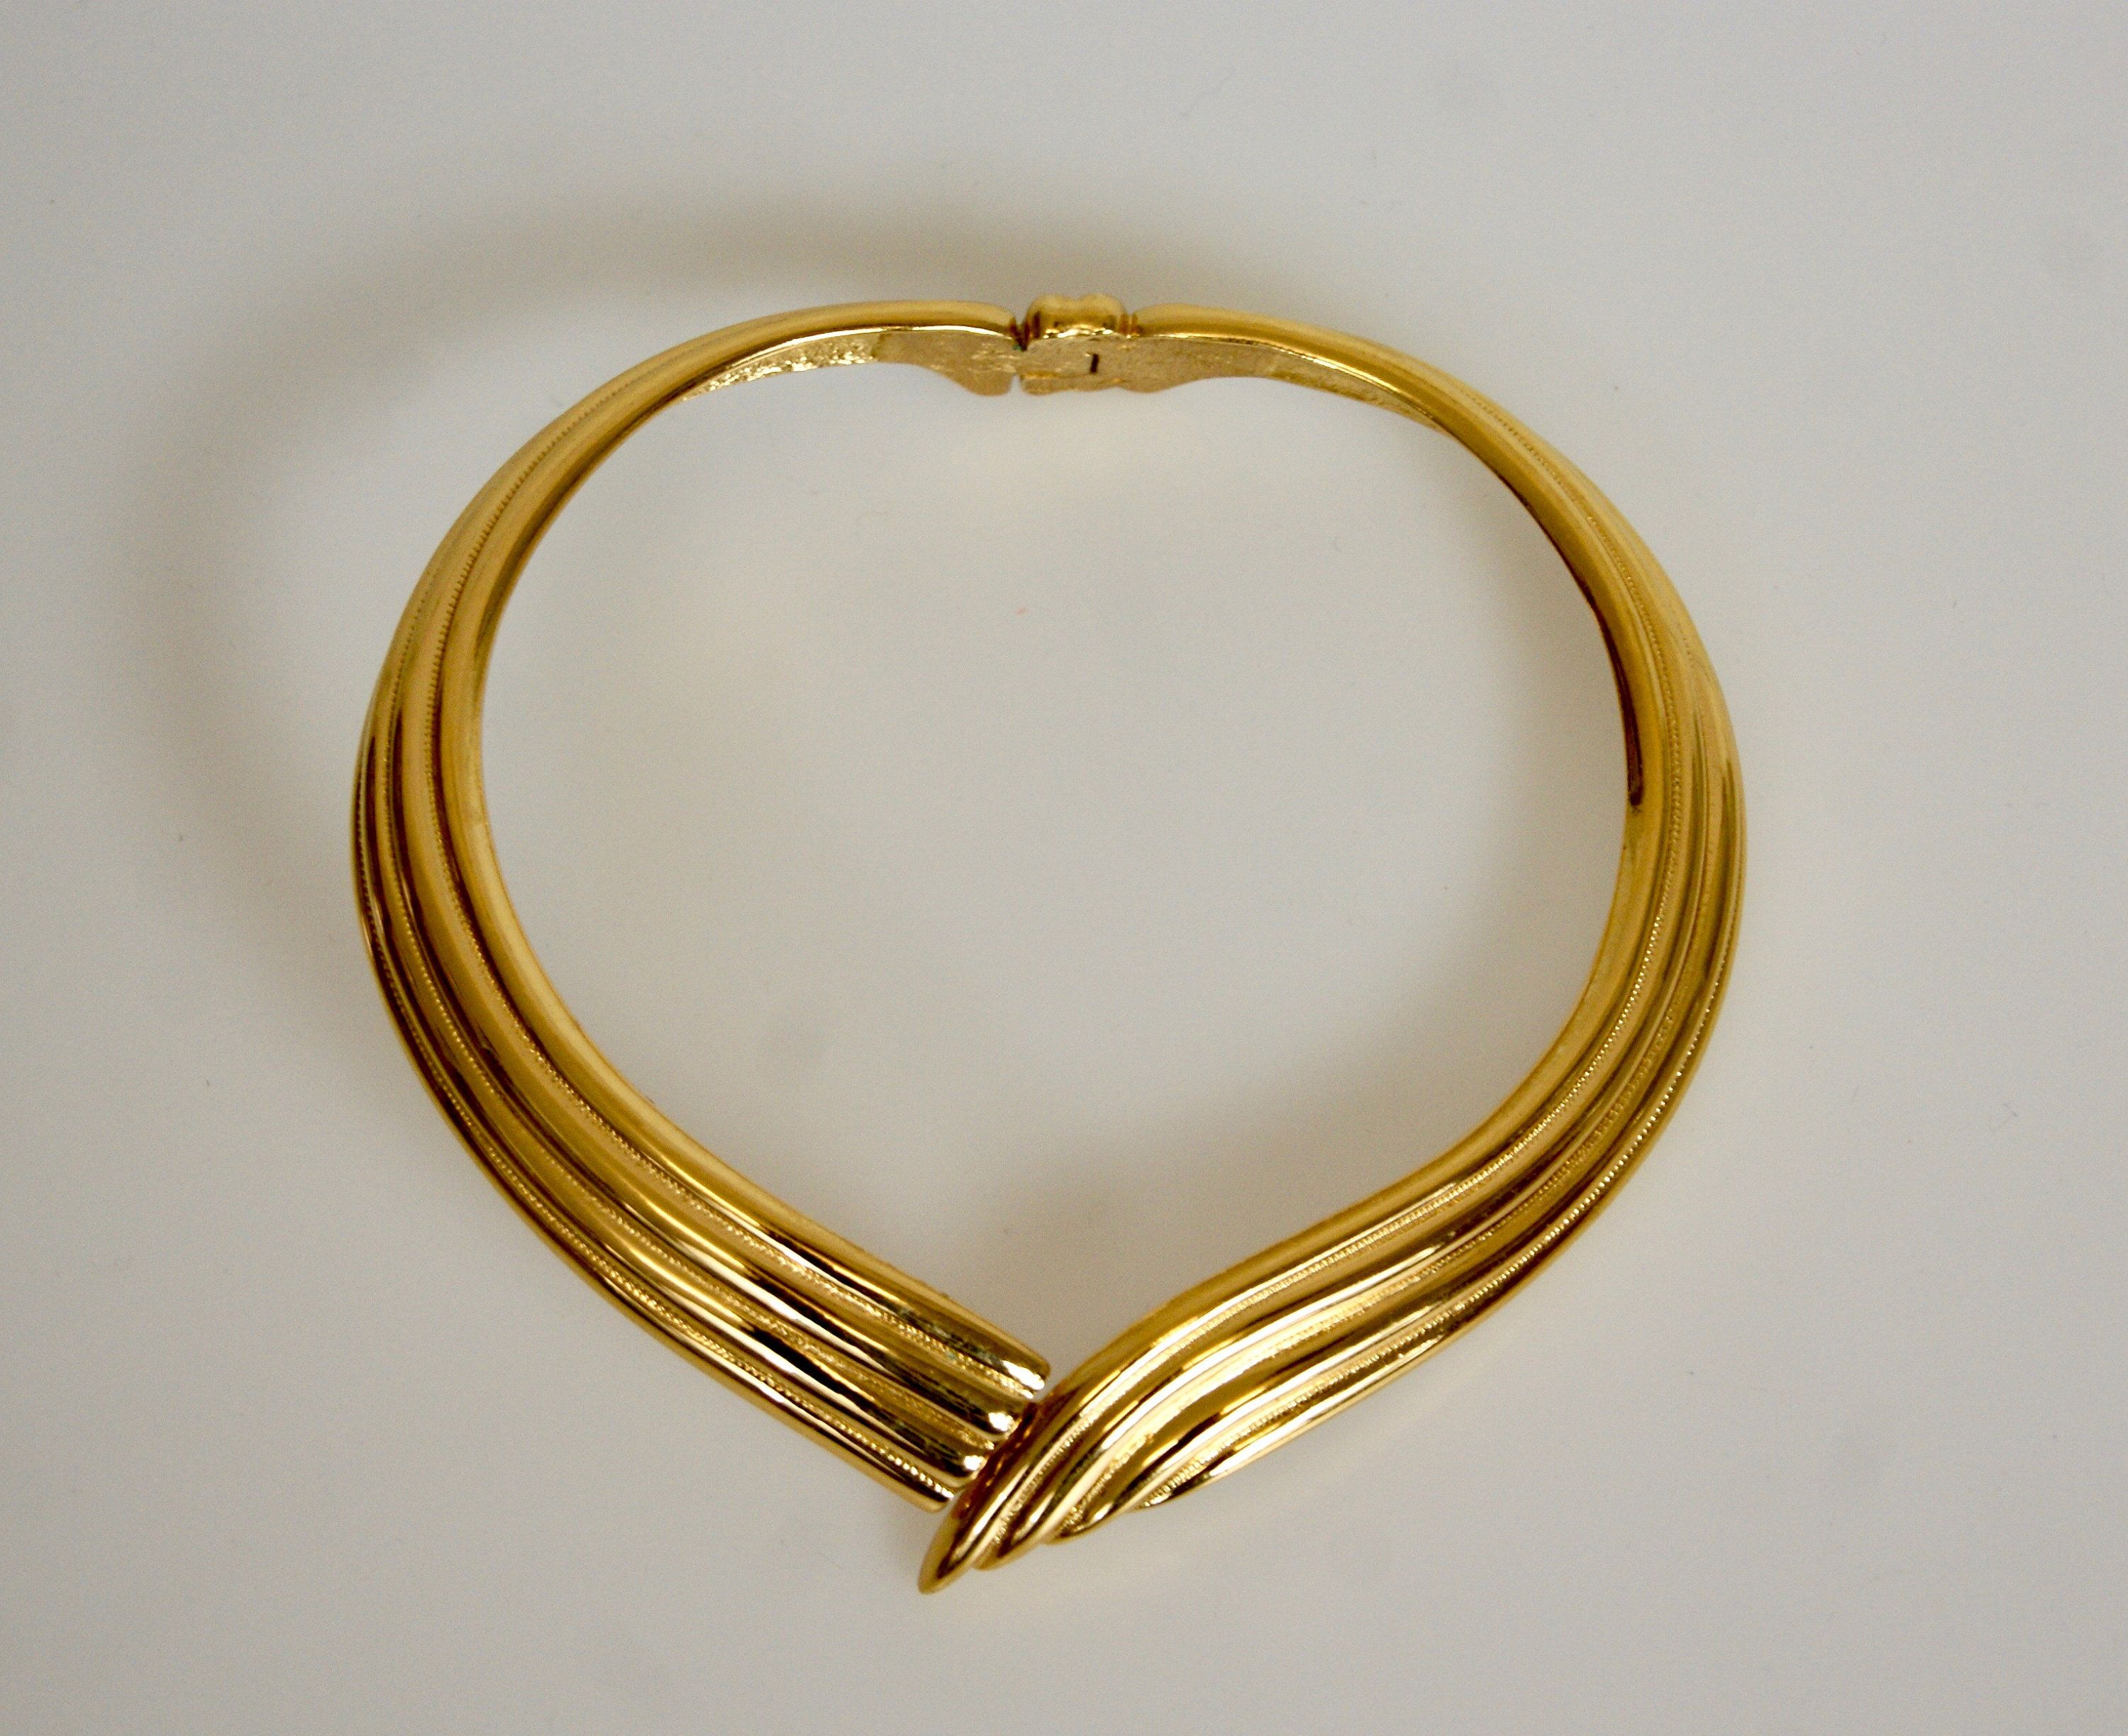 YSL Paris Elegant Vintage Chunky Choker Necklace JEWELRY